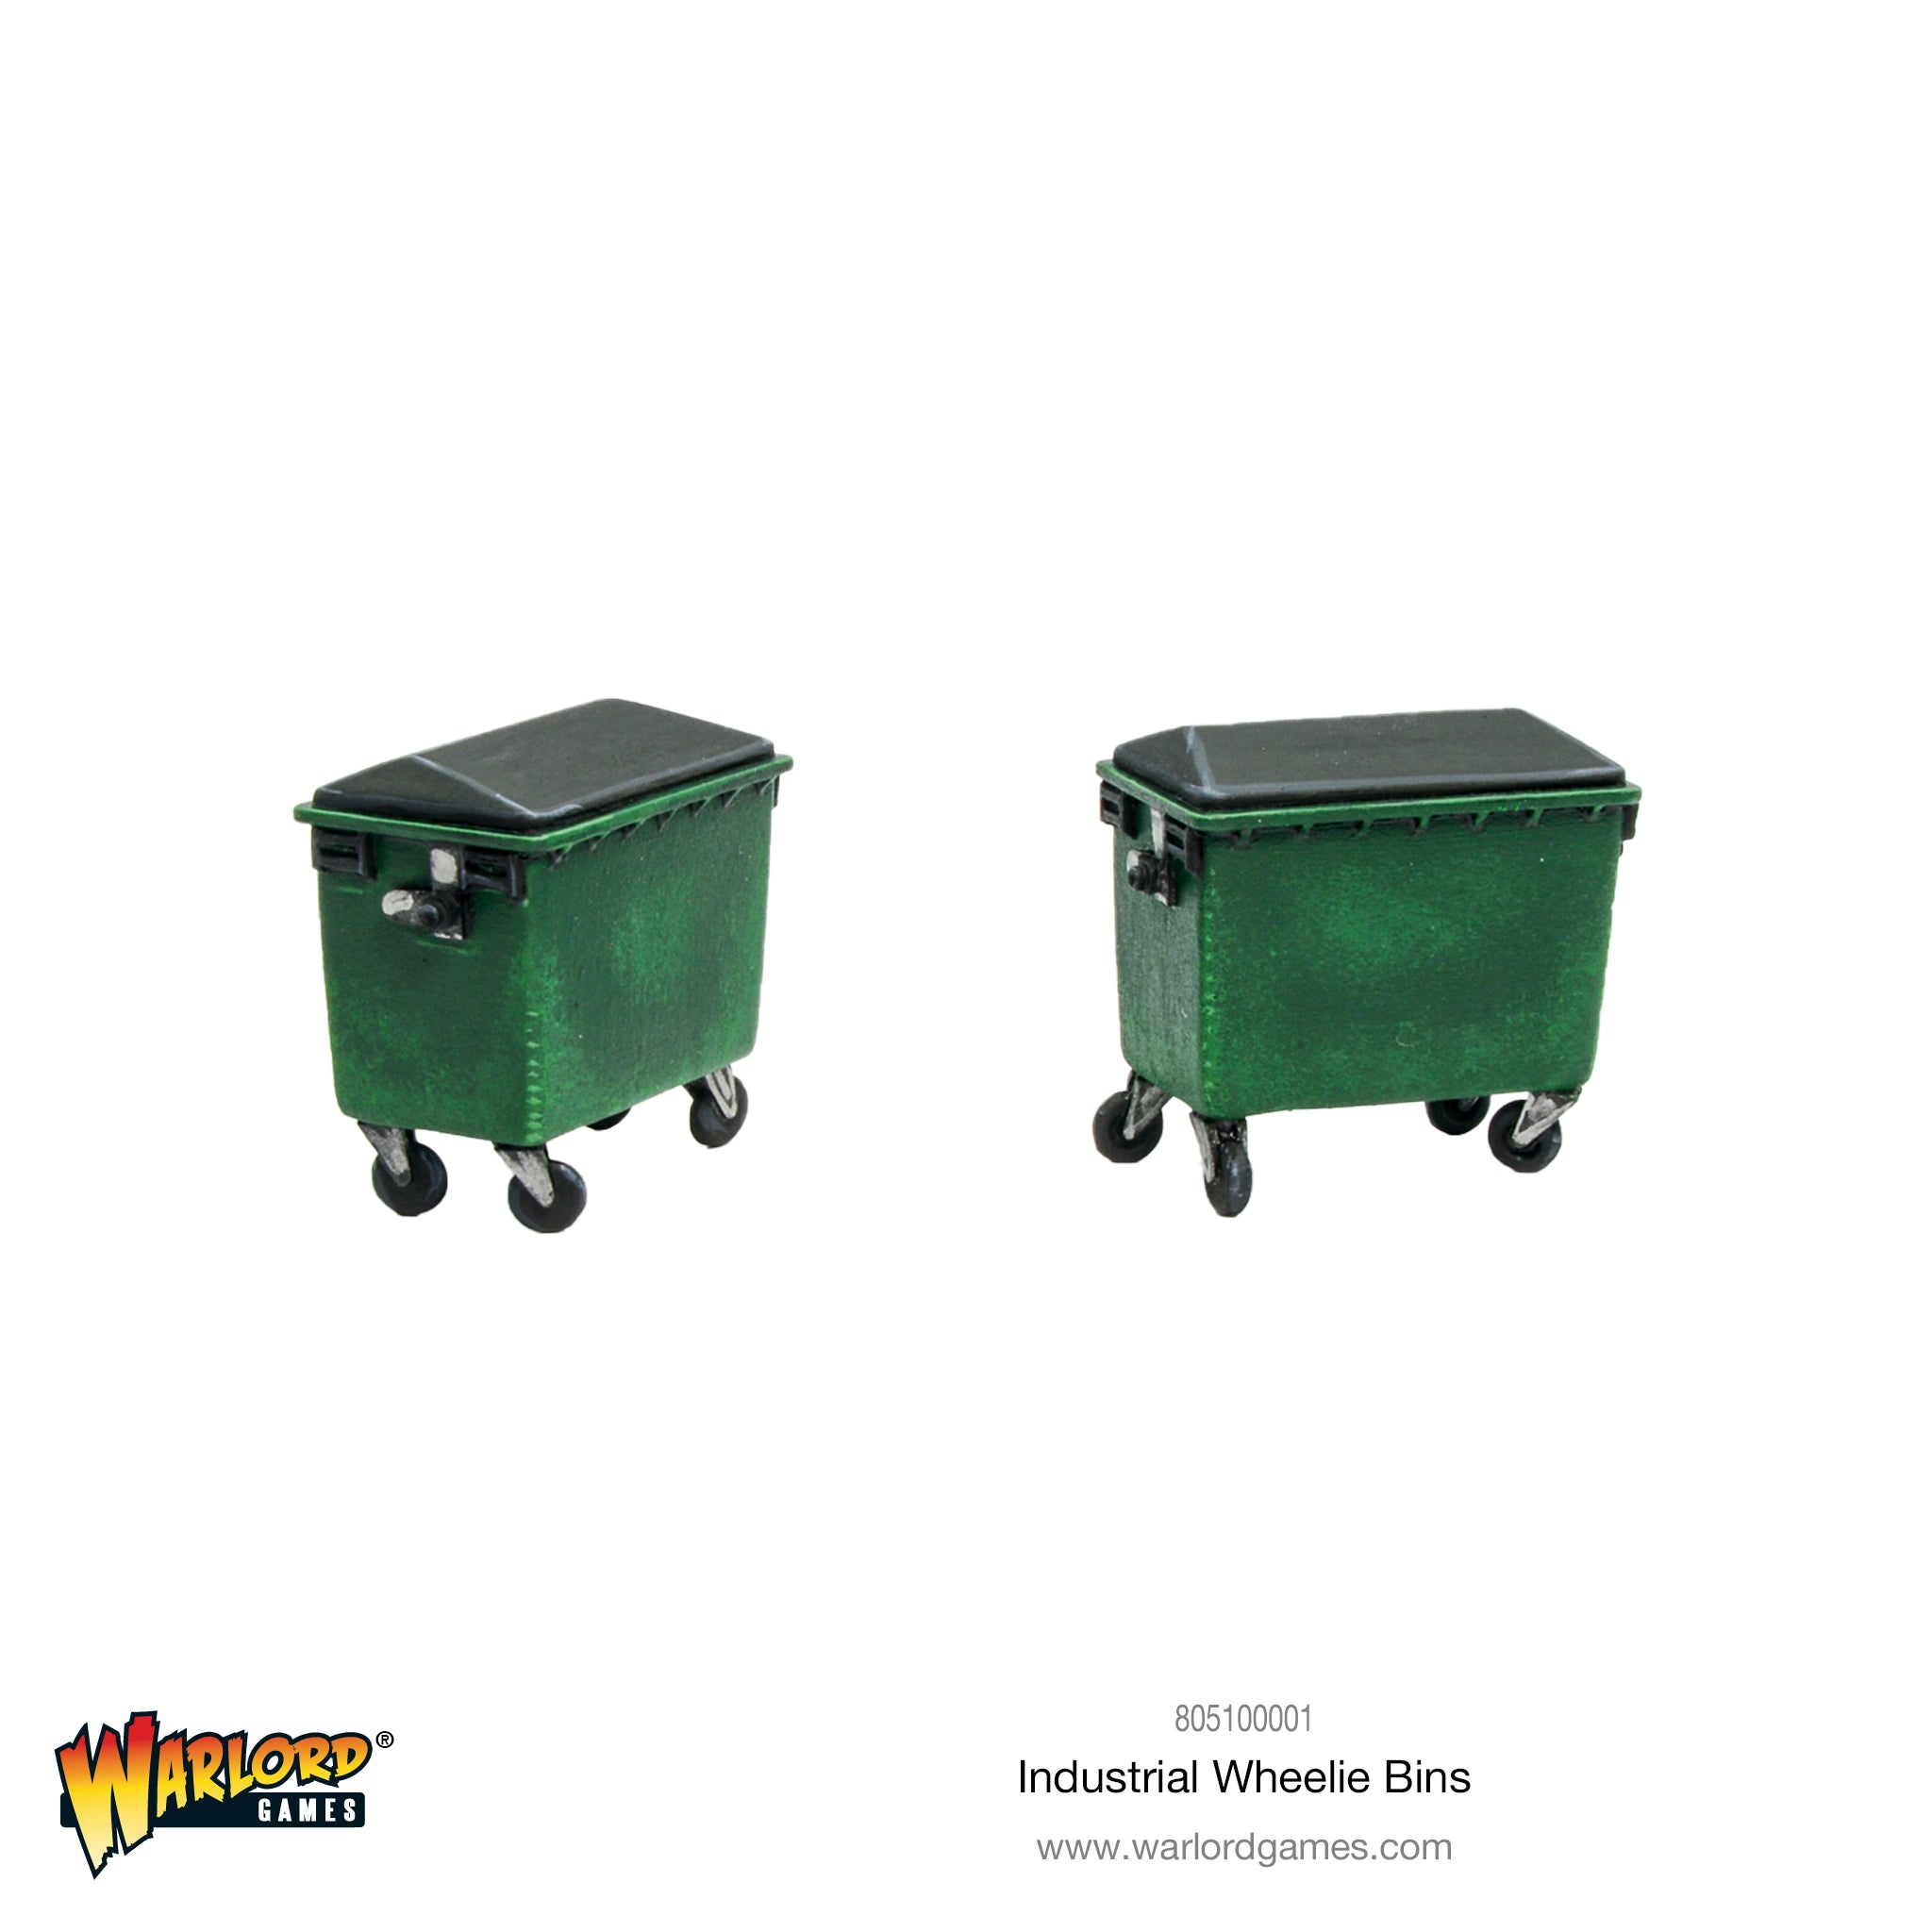 Industrial Wheelie Bins